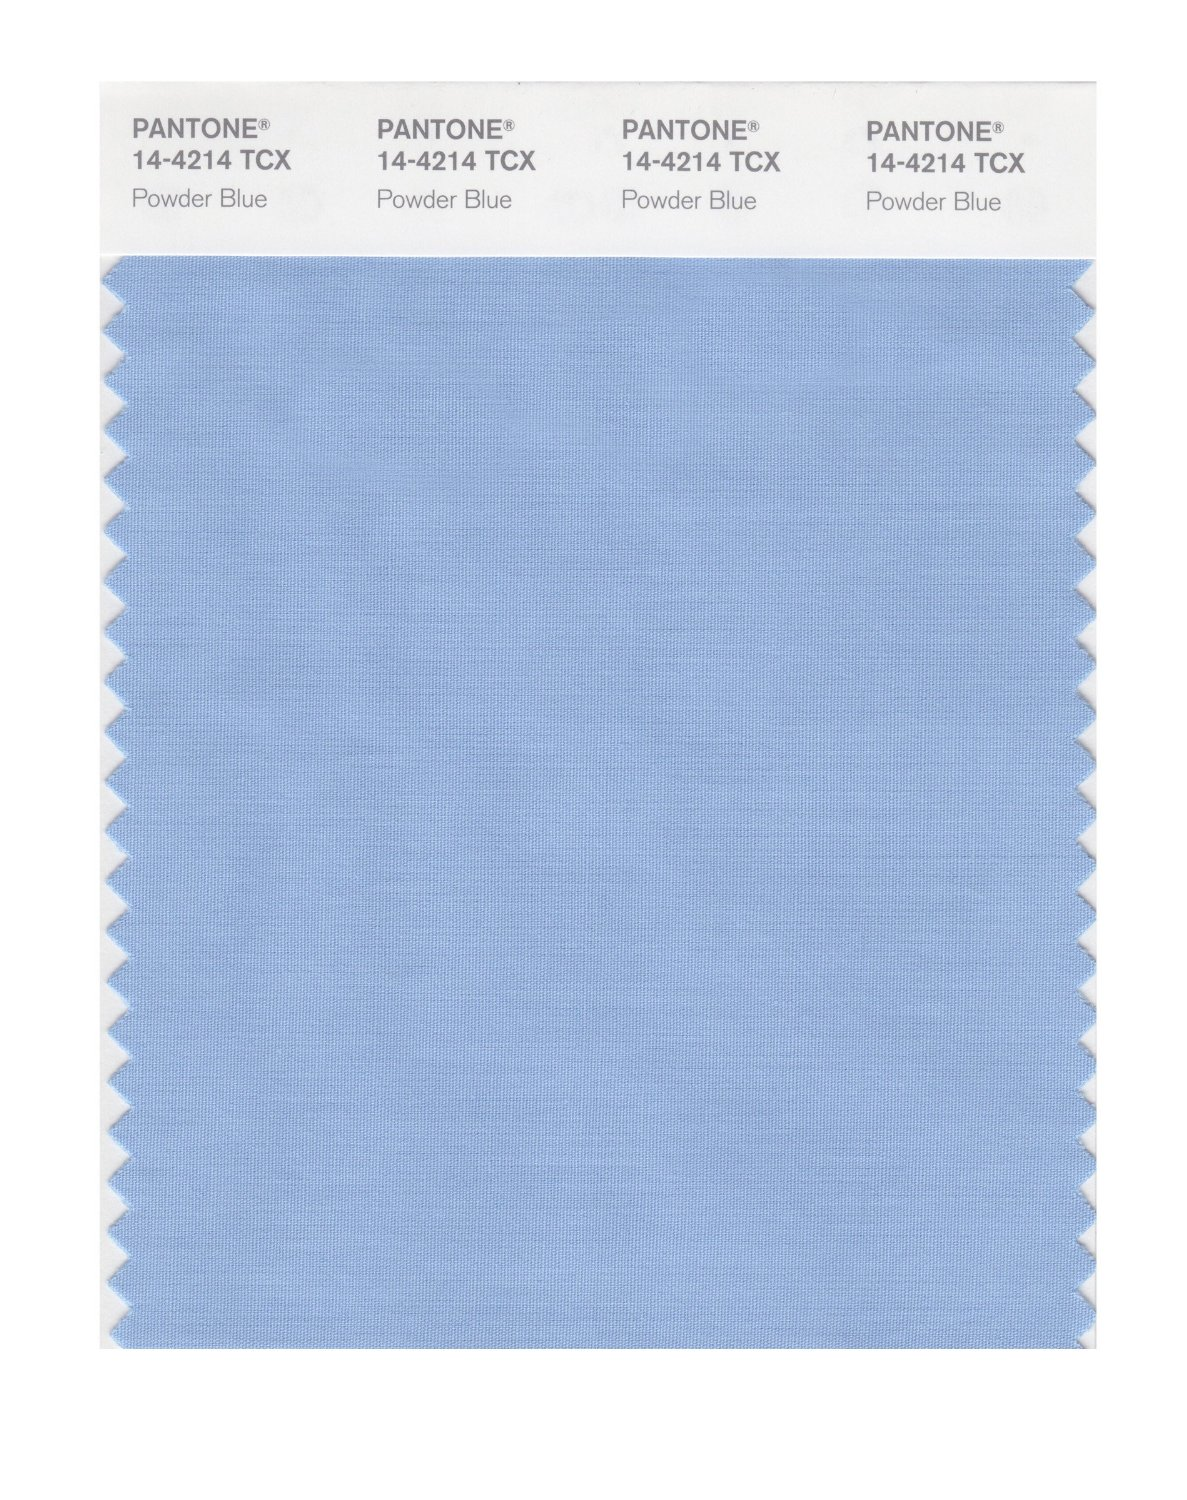 Pantone Smart Swatch 14-4214 Powder Blue